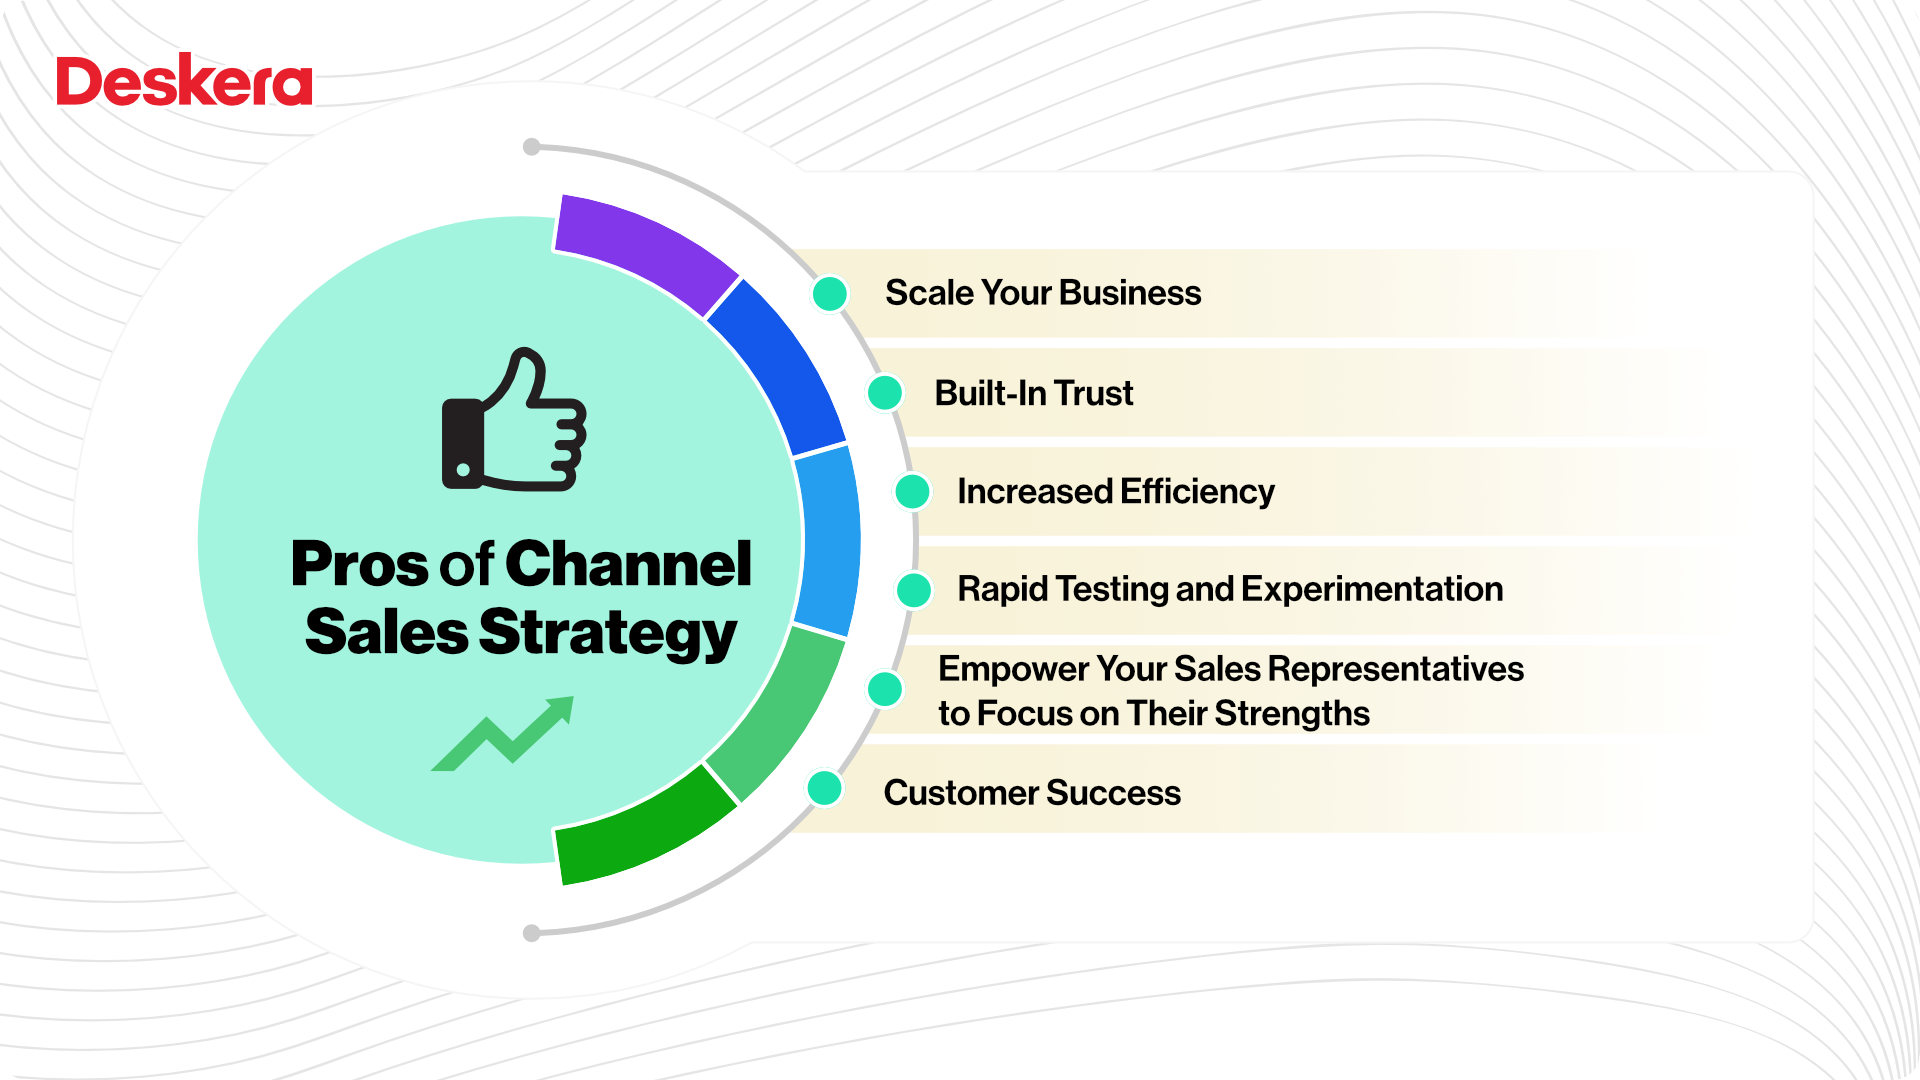 Pros of Channel Sales Strategy